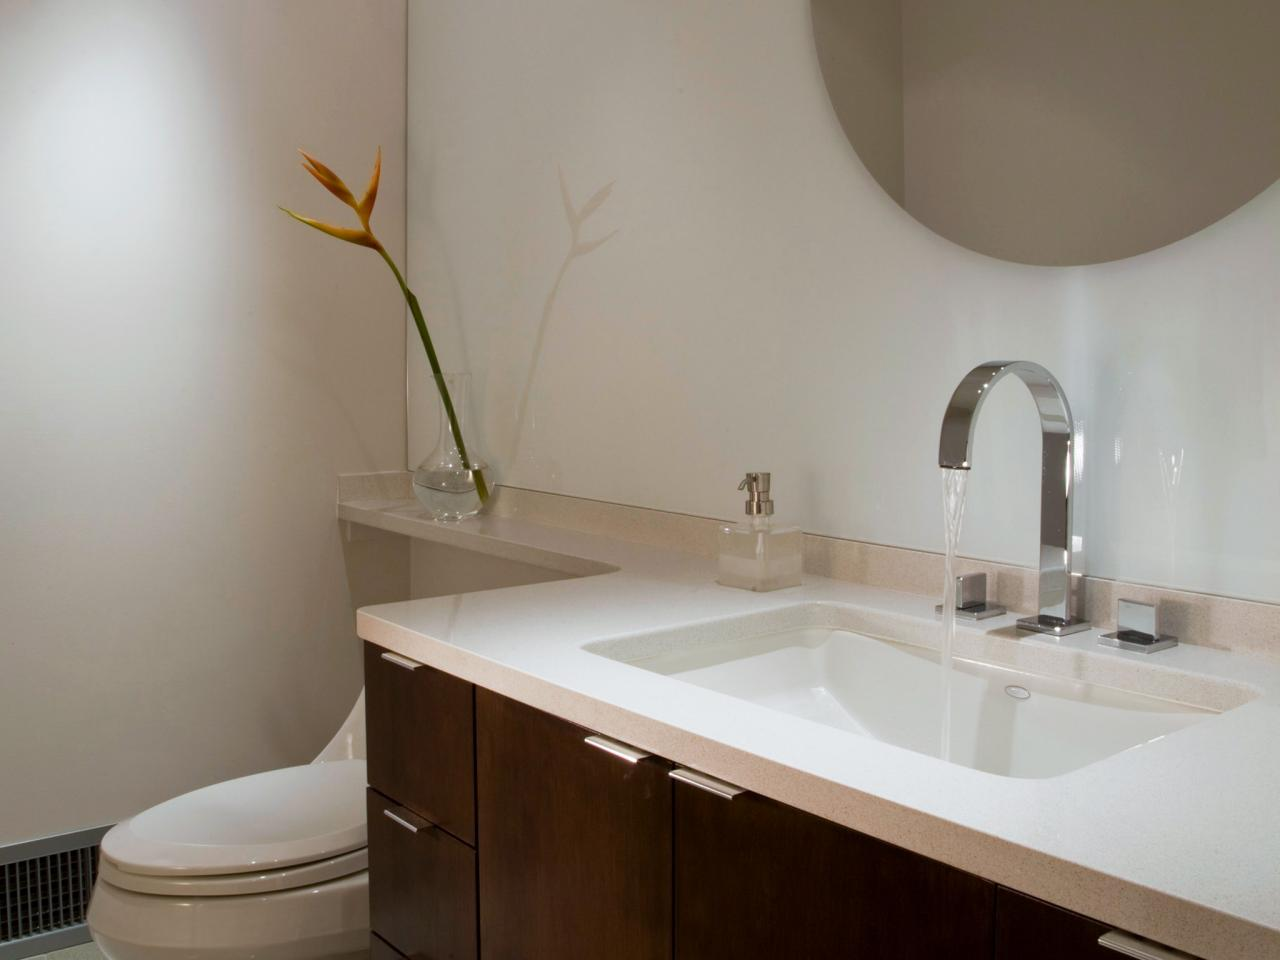 How to clean a Corian sink.